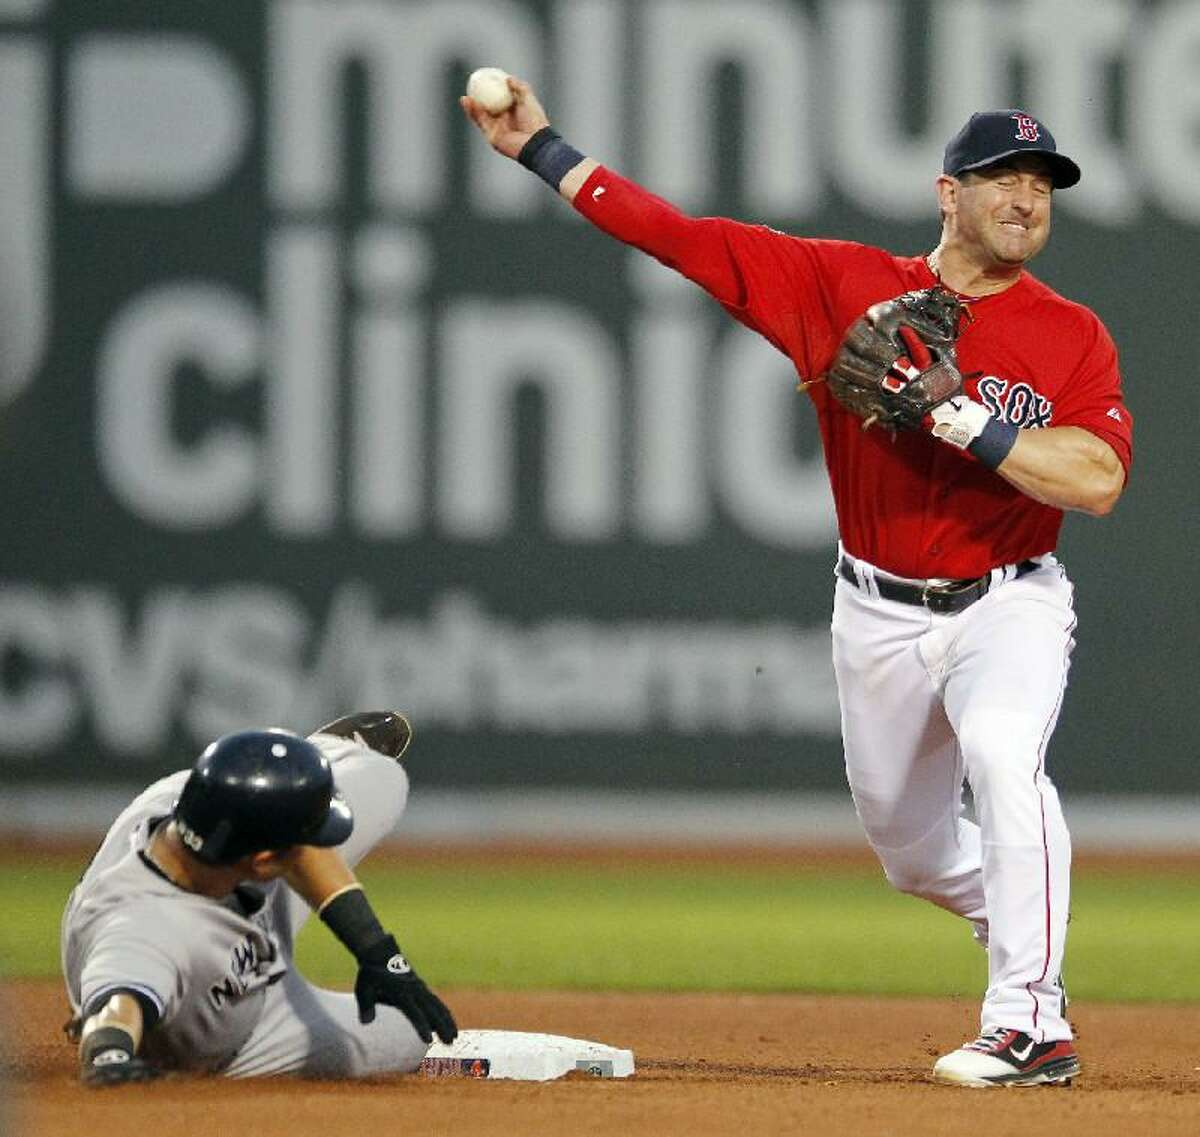 ASSOCIATED PRESS New York Yankees' Nick Swisher, left, is forced out at second base but Boston Red Sox's Nick Punto cannot complete the double play during the fourth inning of the second game of a doubleheader at Fenway Park in Boston. The Red Sox won 9-5.